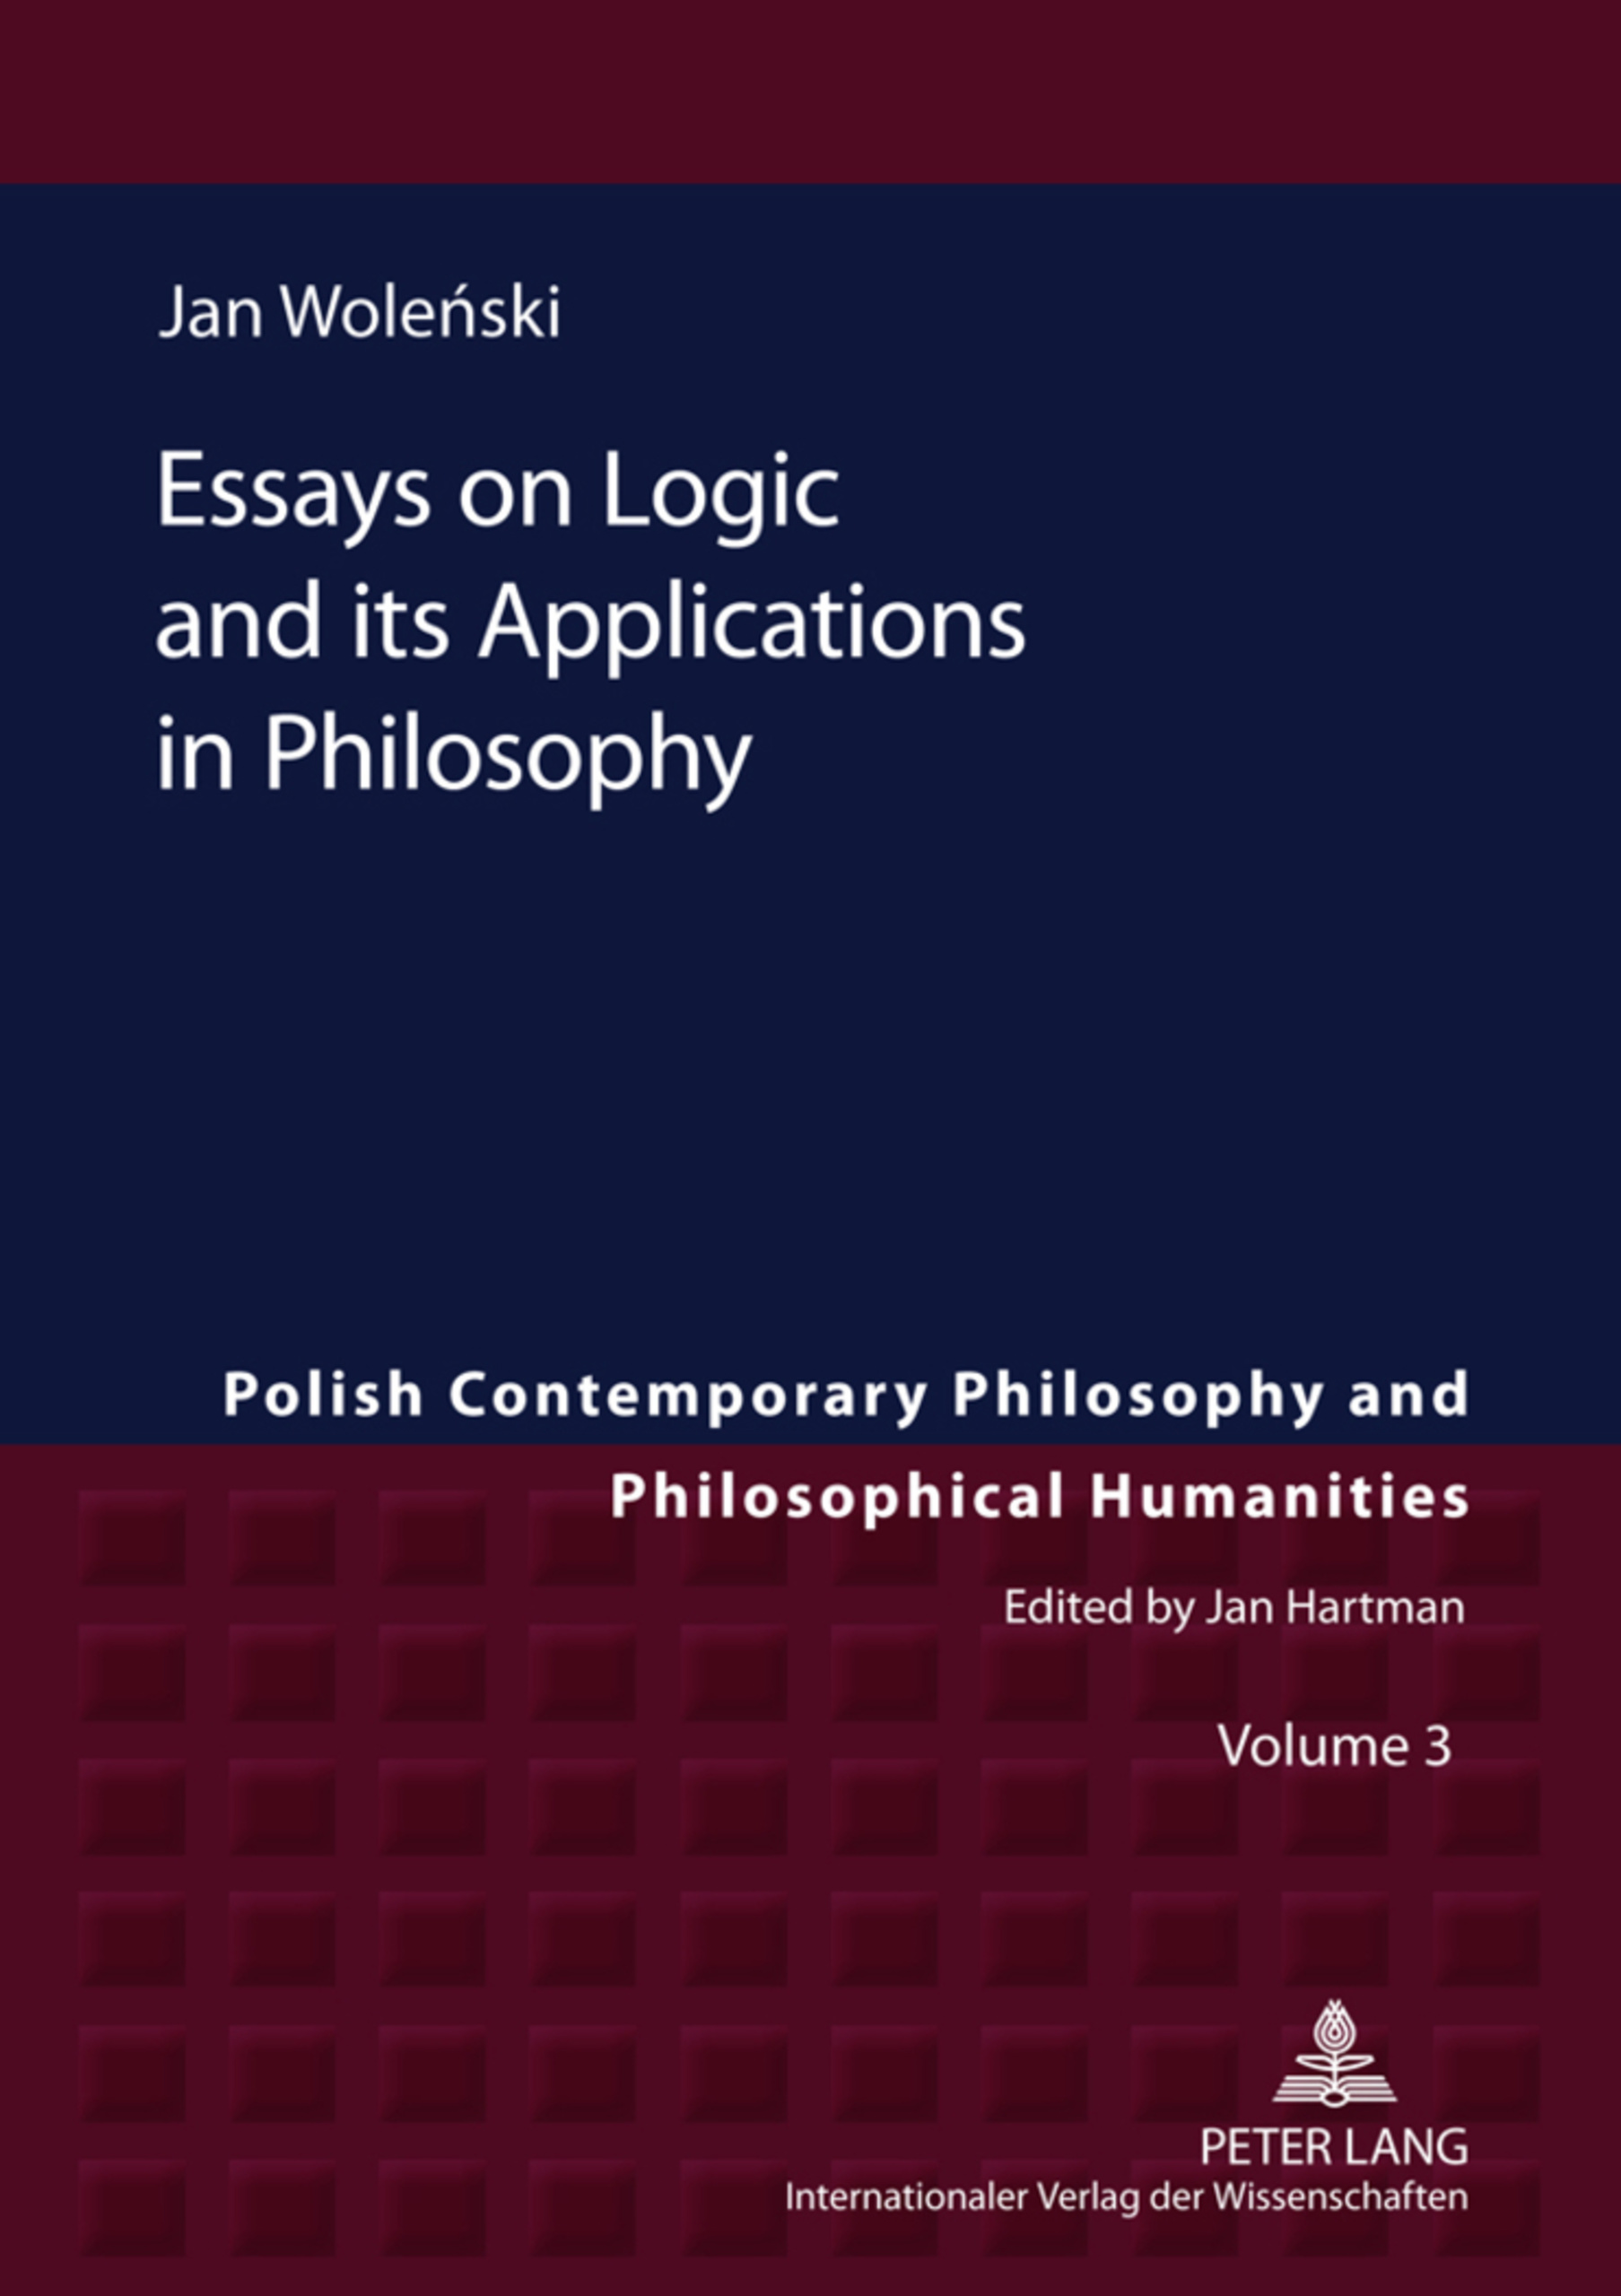 Title: Essays on Logic and its Applications in Philosophy